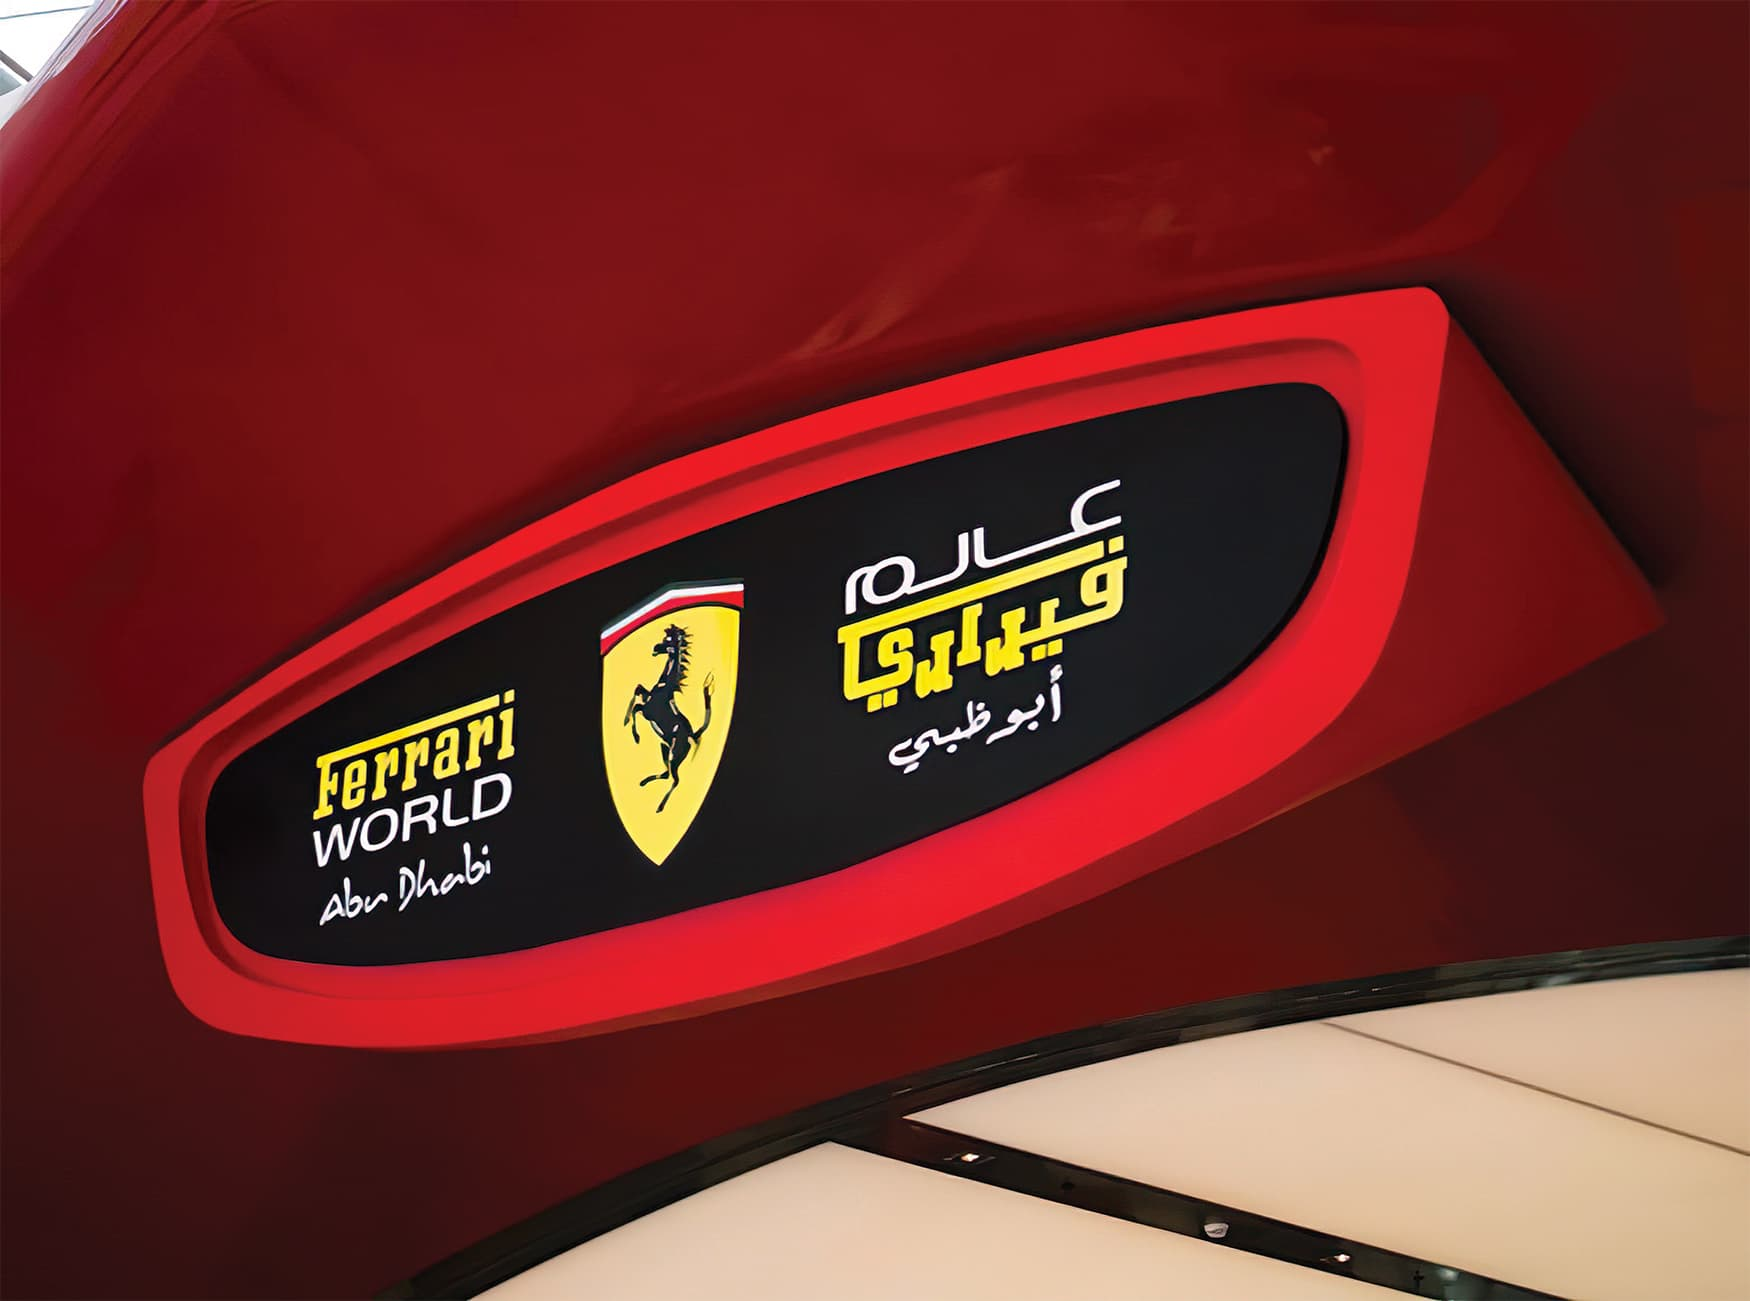 Ferrari World in Abu Dhabi in the United Arab Emirates. Indoor Theme Park Project Identity Signage.